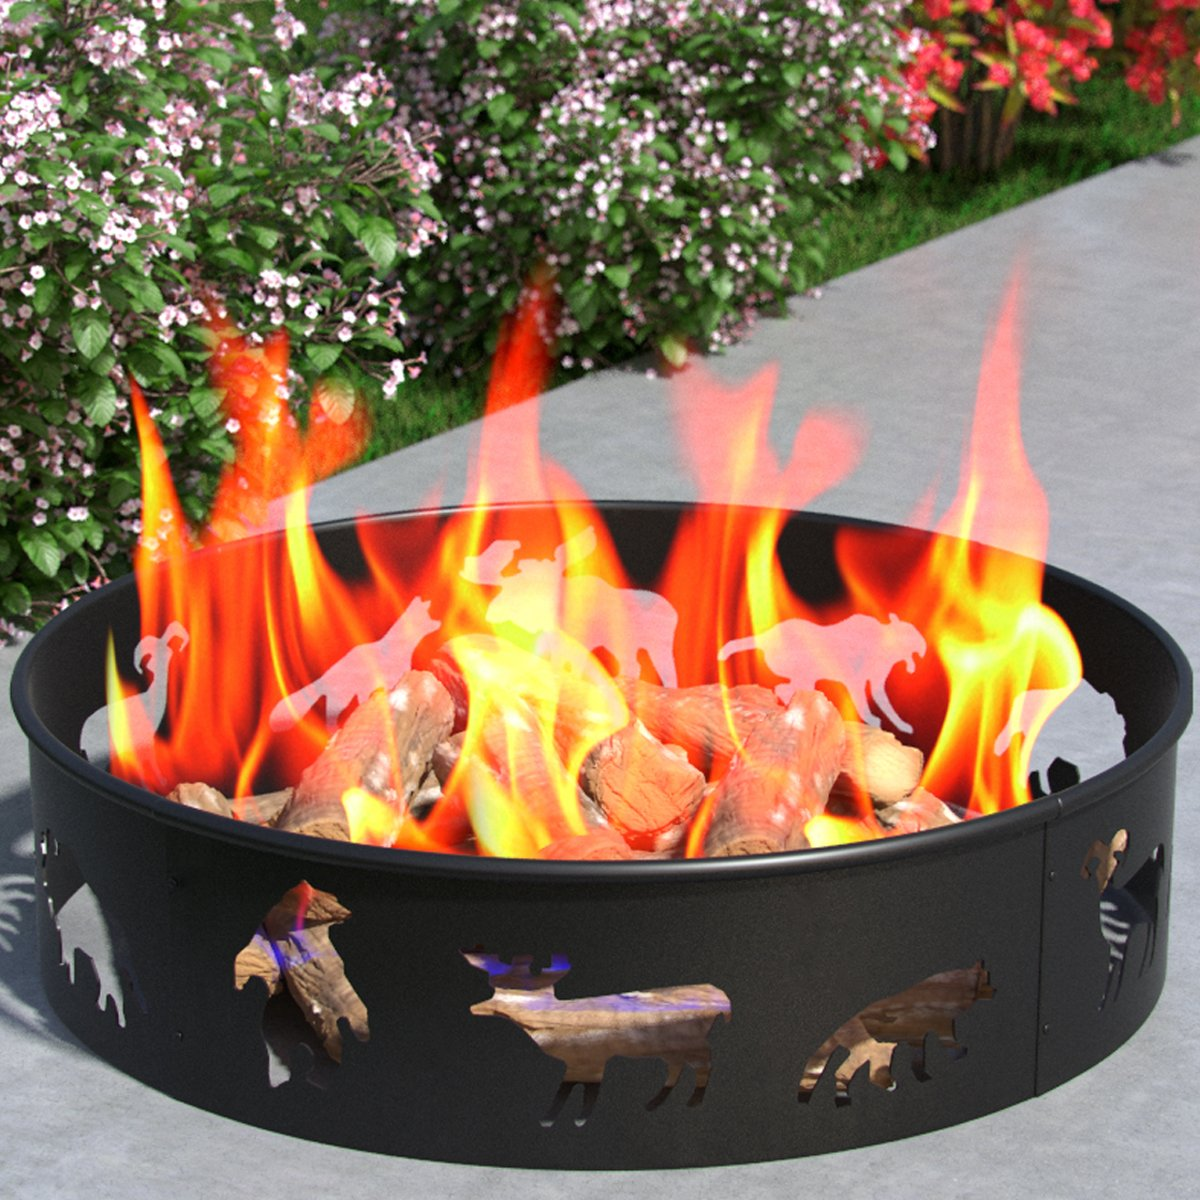 "Bear Moose Fox 28"" Backyard Garden Home Star and Moon Light Wood Fire Pit Fire Ring. For RV, Camping, and Outdoor Fireplace. Works as Firewood Patio Heater, Stove or Firebowl without Propane Gas by Regal Flame"